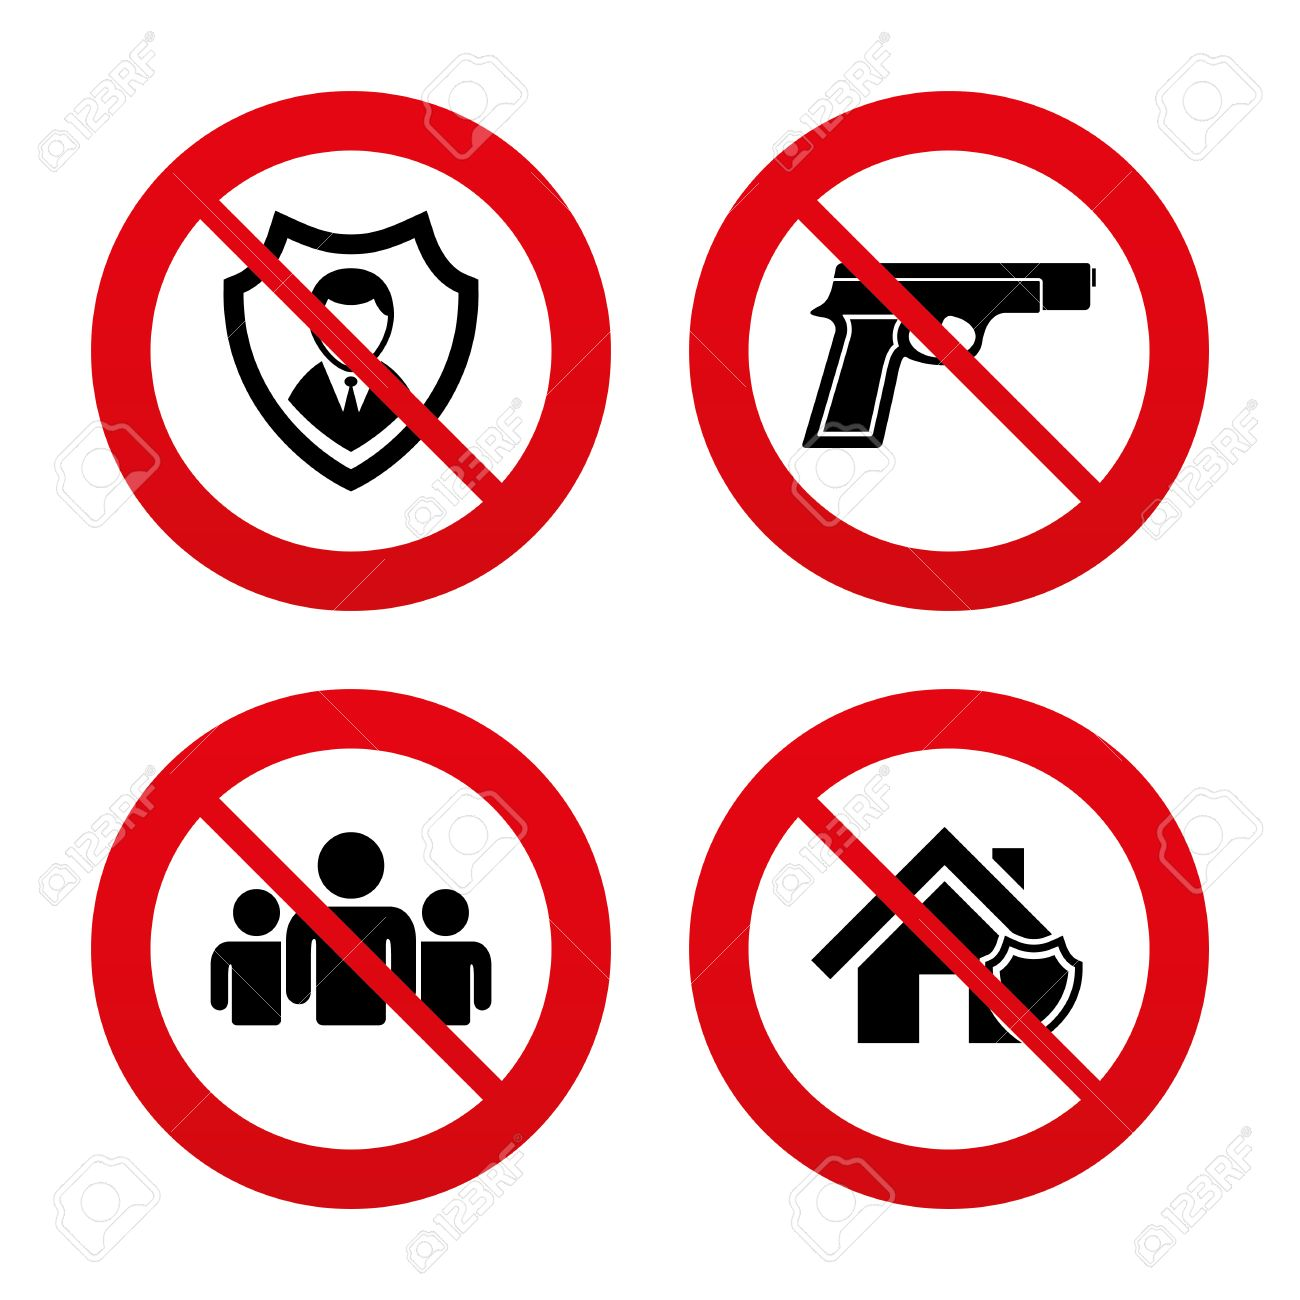 No ban or stop signs security agency icons home shield no ban or stop signs security agency icons home shield protection symbols biocorpaavc